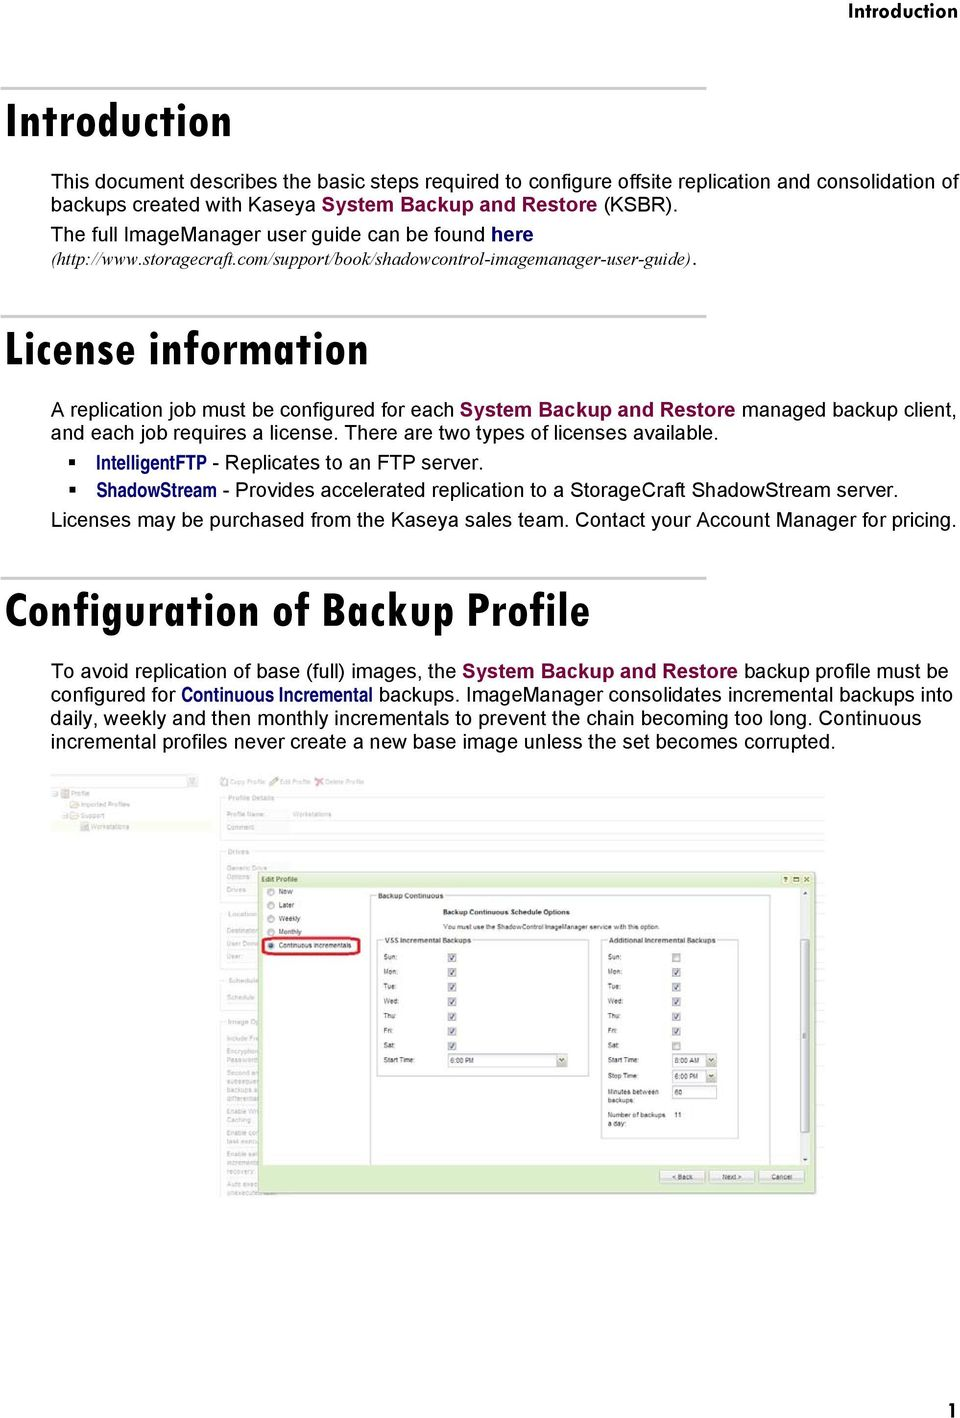 License information A replication job must be configured for each System Backup and Restore managed backup client, and each job requires a license. There are two types of licenses available.